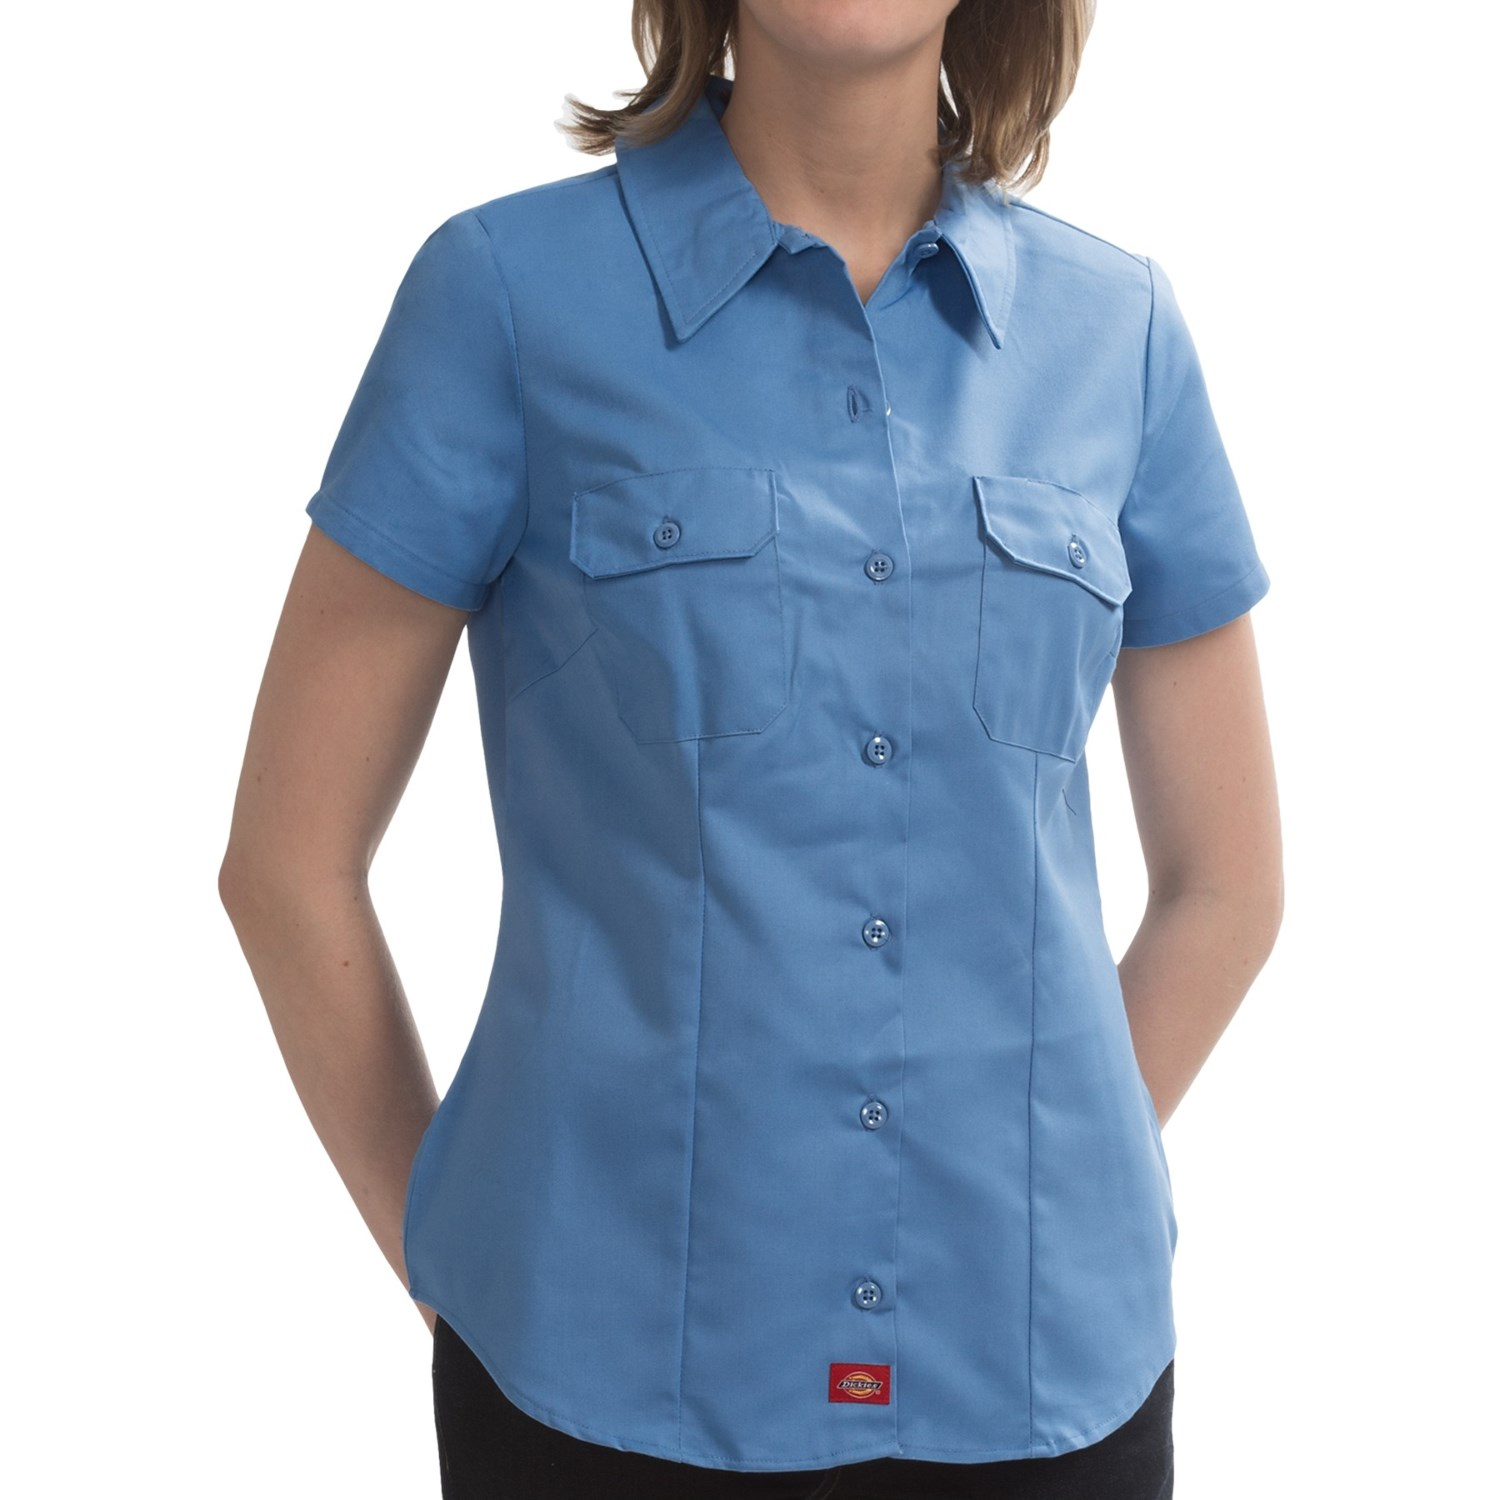 Dickies Wrinkle Resistant Work Shirt For Women Save 86: wrinkle free shirts for women